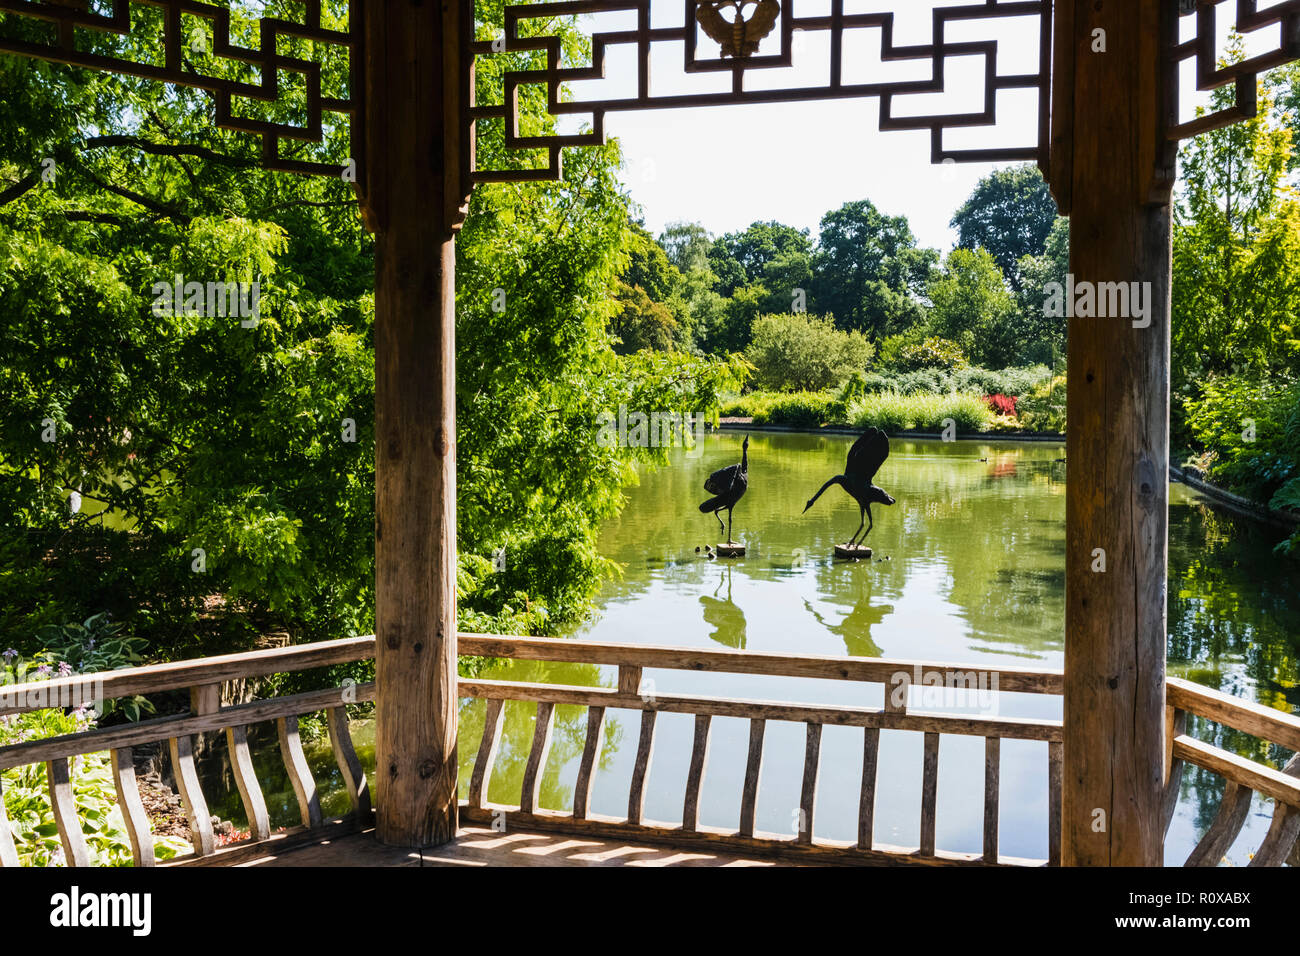 England, Surrey, Guildford, Wisley, The Royal Horticultural Society Garden, Seven Acres Pond and The Japanese Pagoda Stock Photo